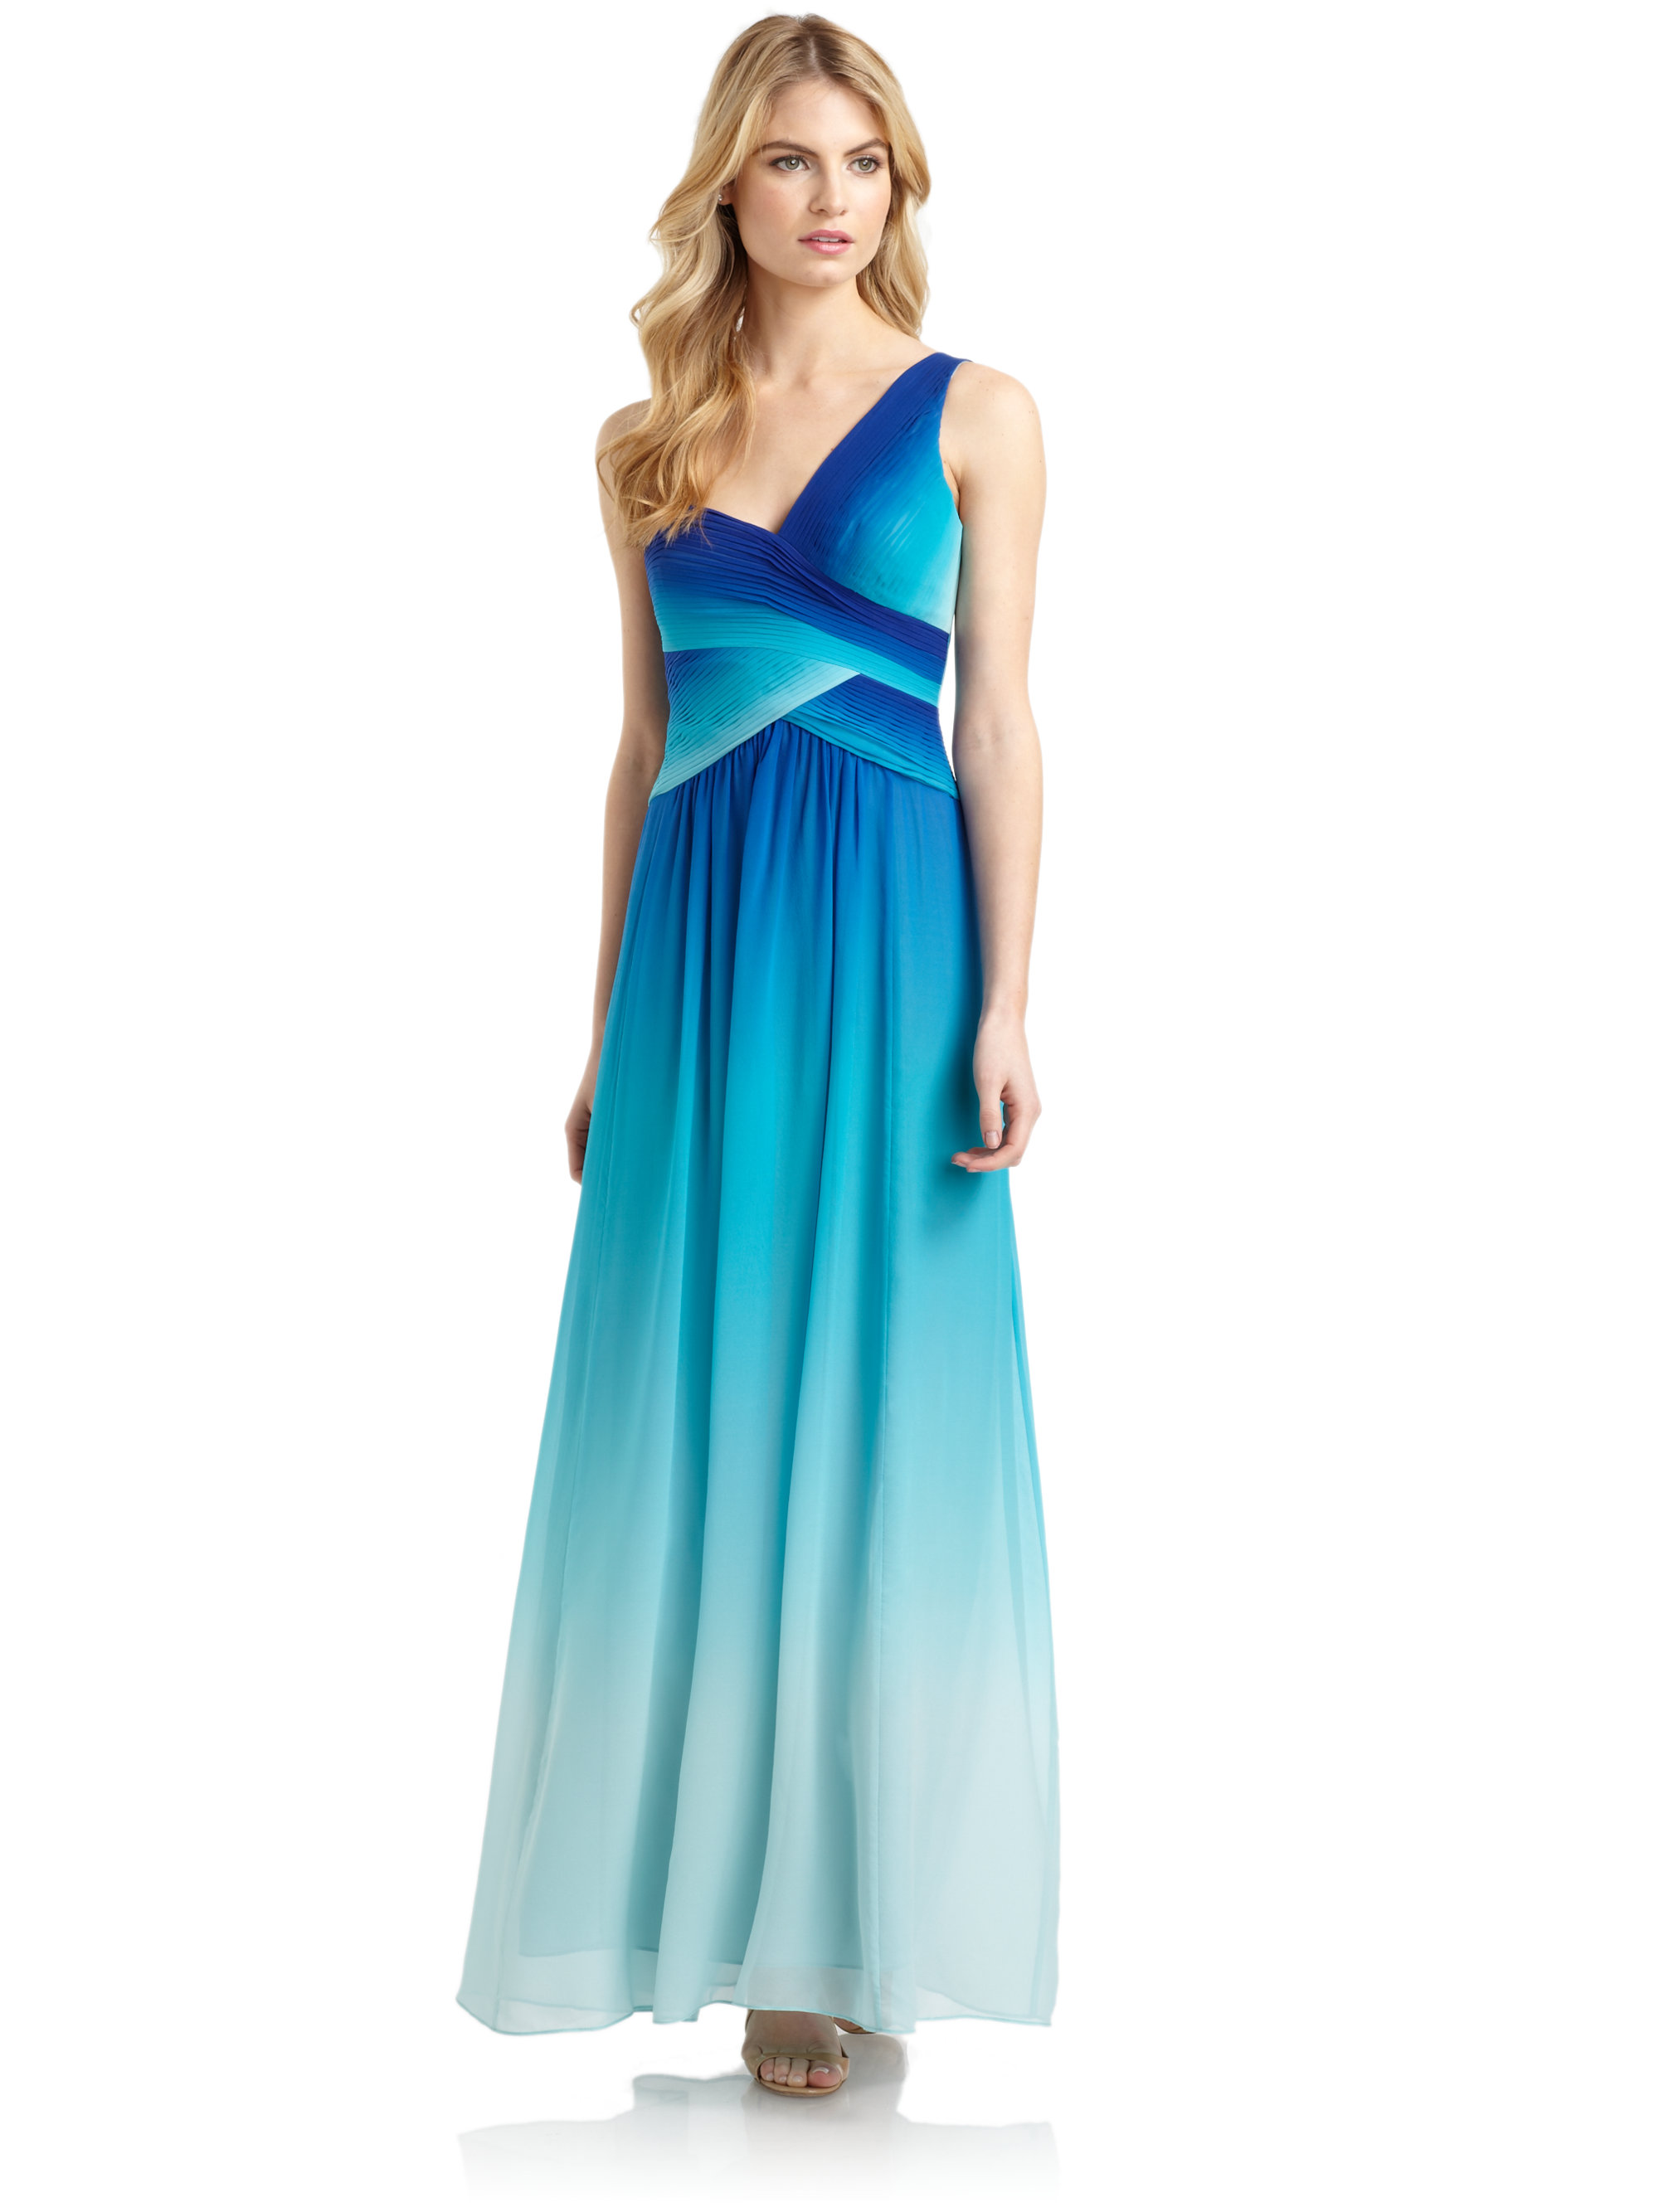 Lyst - Bcbgmaxazria Timoa Silk Chiffon Ombre One-shoulder Gown in Blue